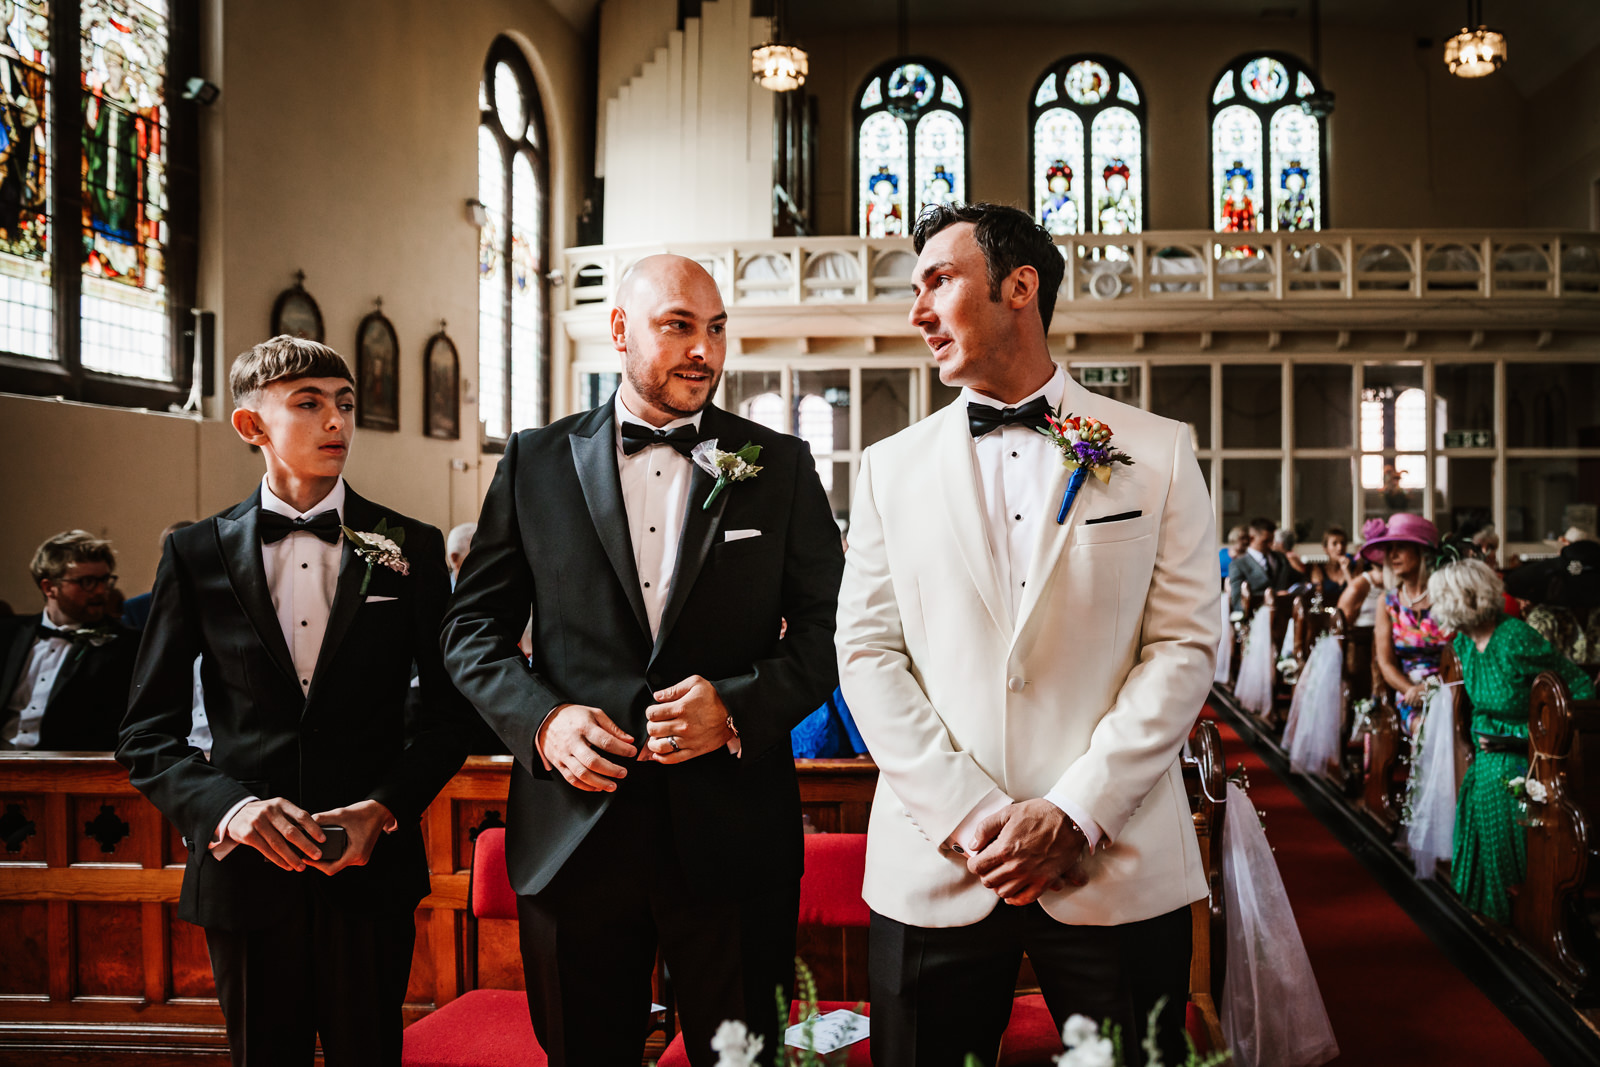 Groom waiting for his bride to be in church